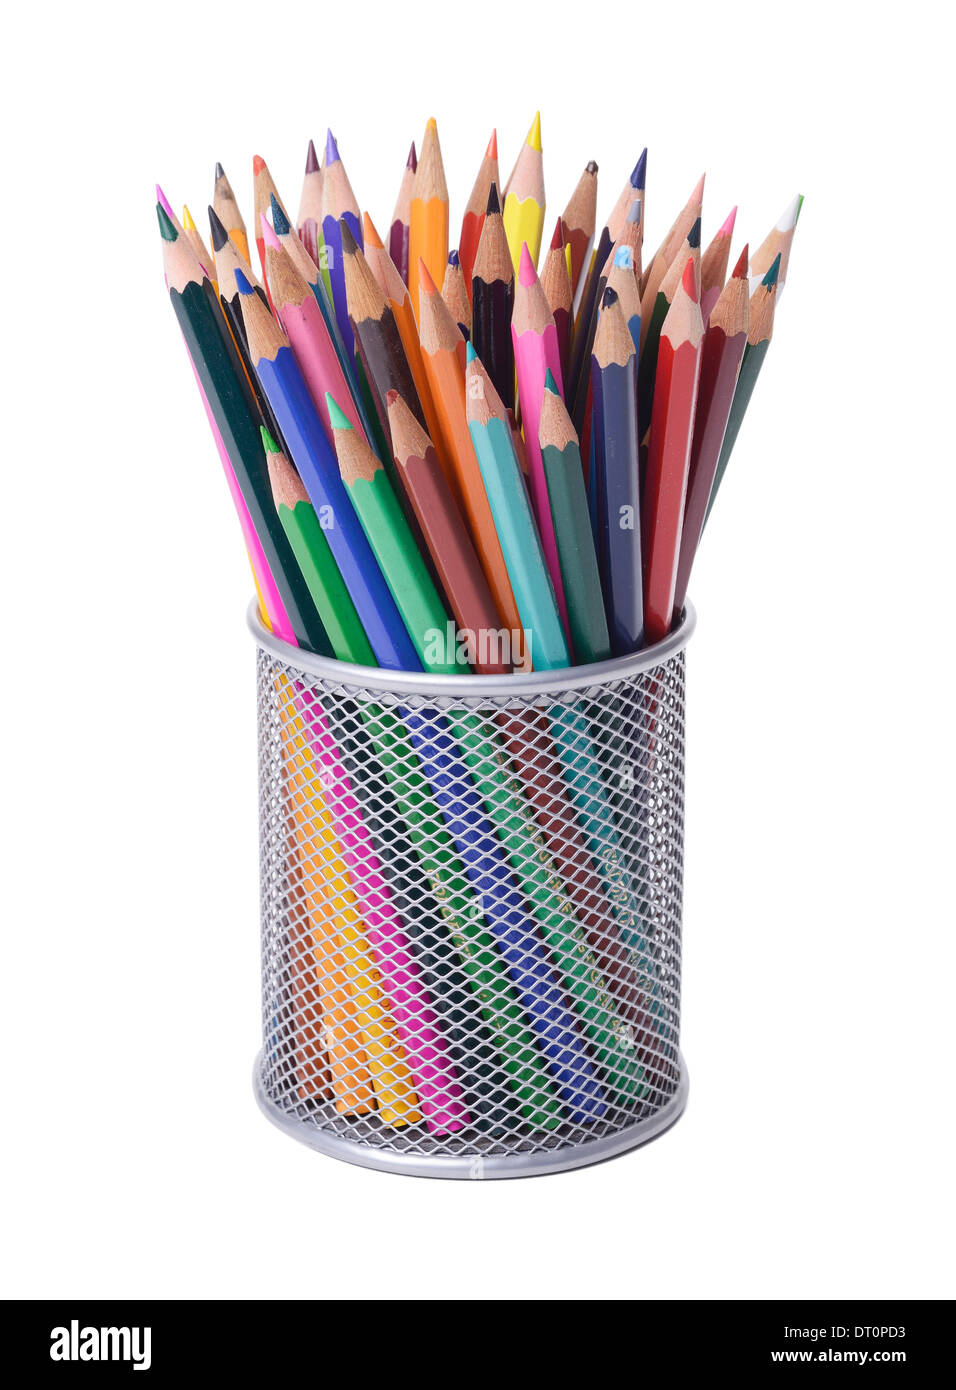 Office desk pencil pot full of coloured pencils - Stock Image